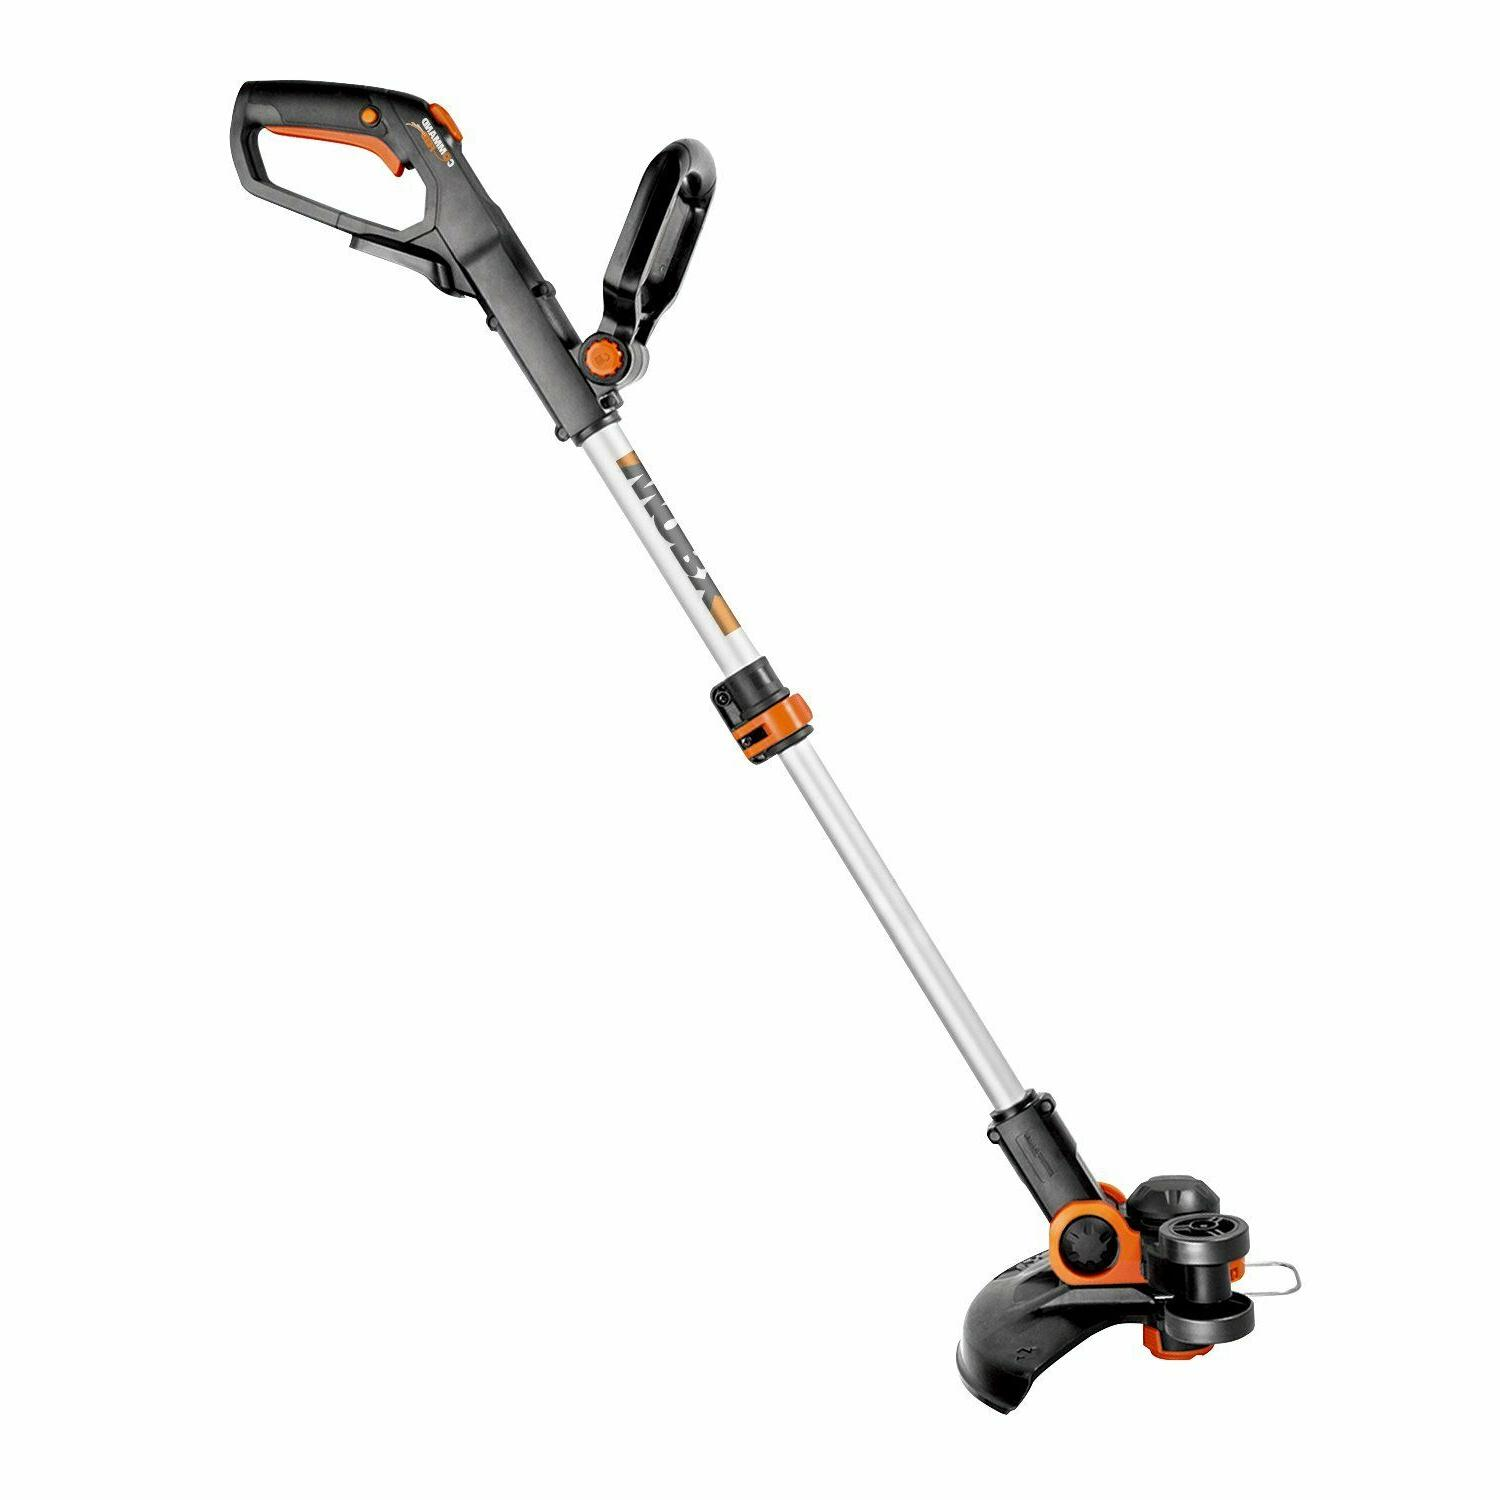 Cordless Electric Weed Eater Wacker Edger Grass Yard 20V